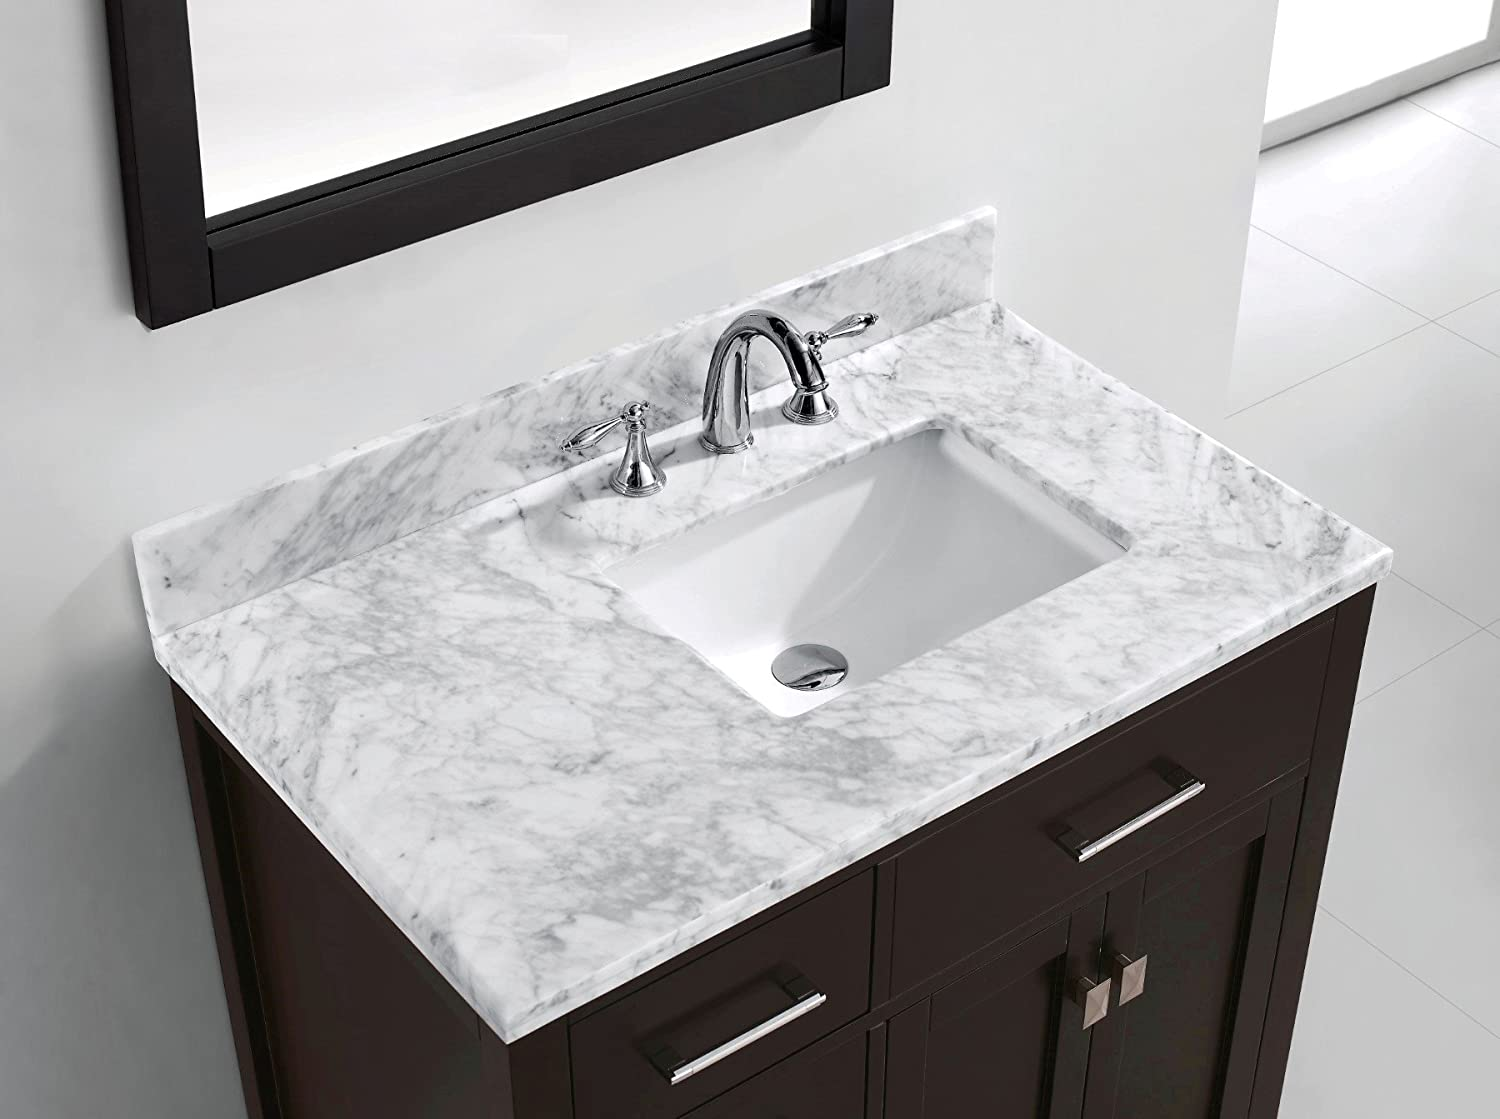 minimal and monochrome unit lovely counter unusual buy vanity above bathroom sink shallow sinks with new square from toilet units rectangular bathrooms basin